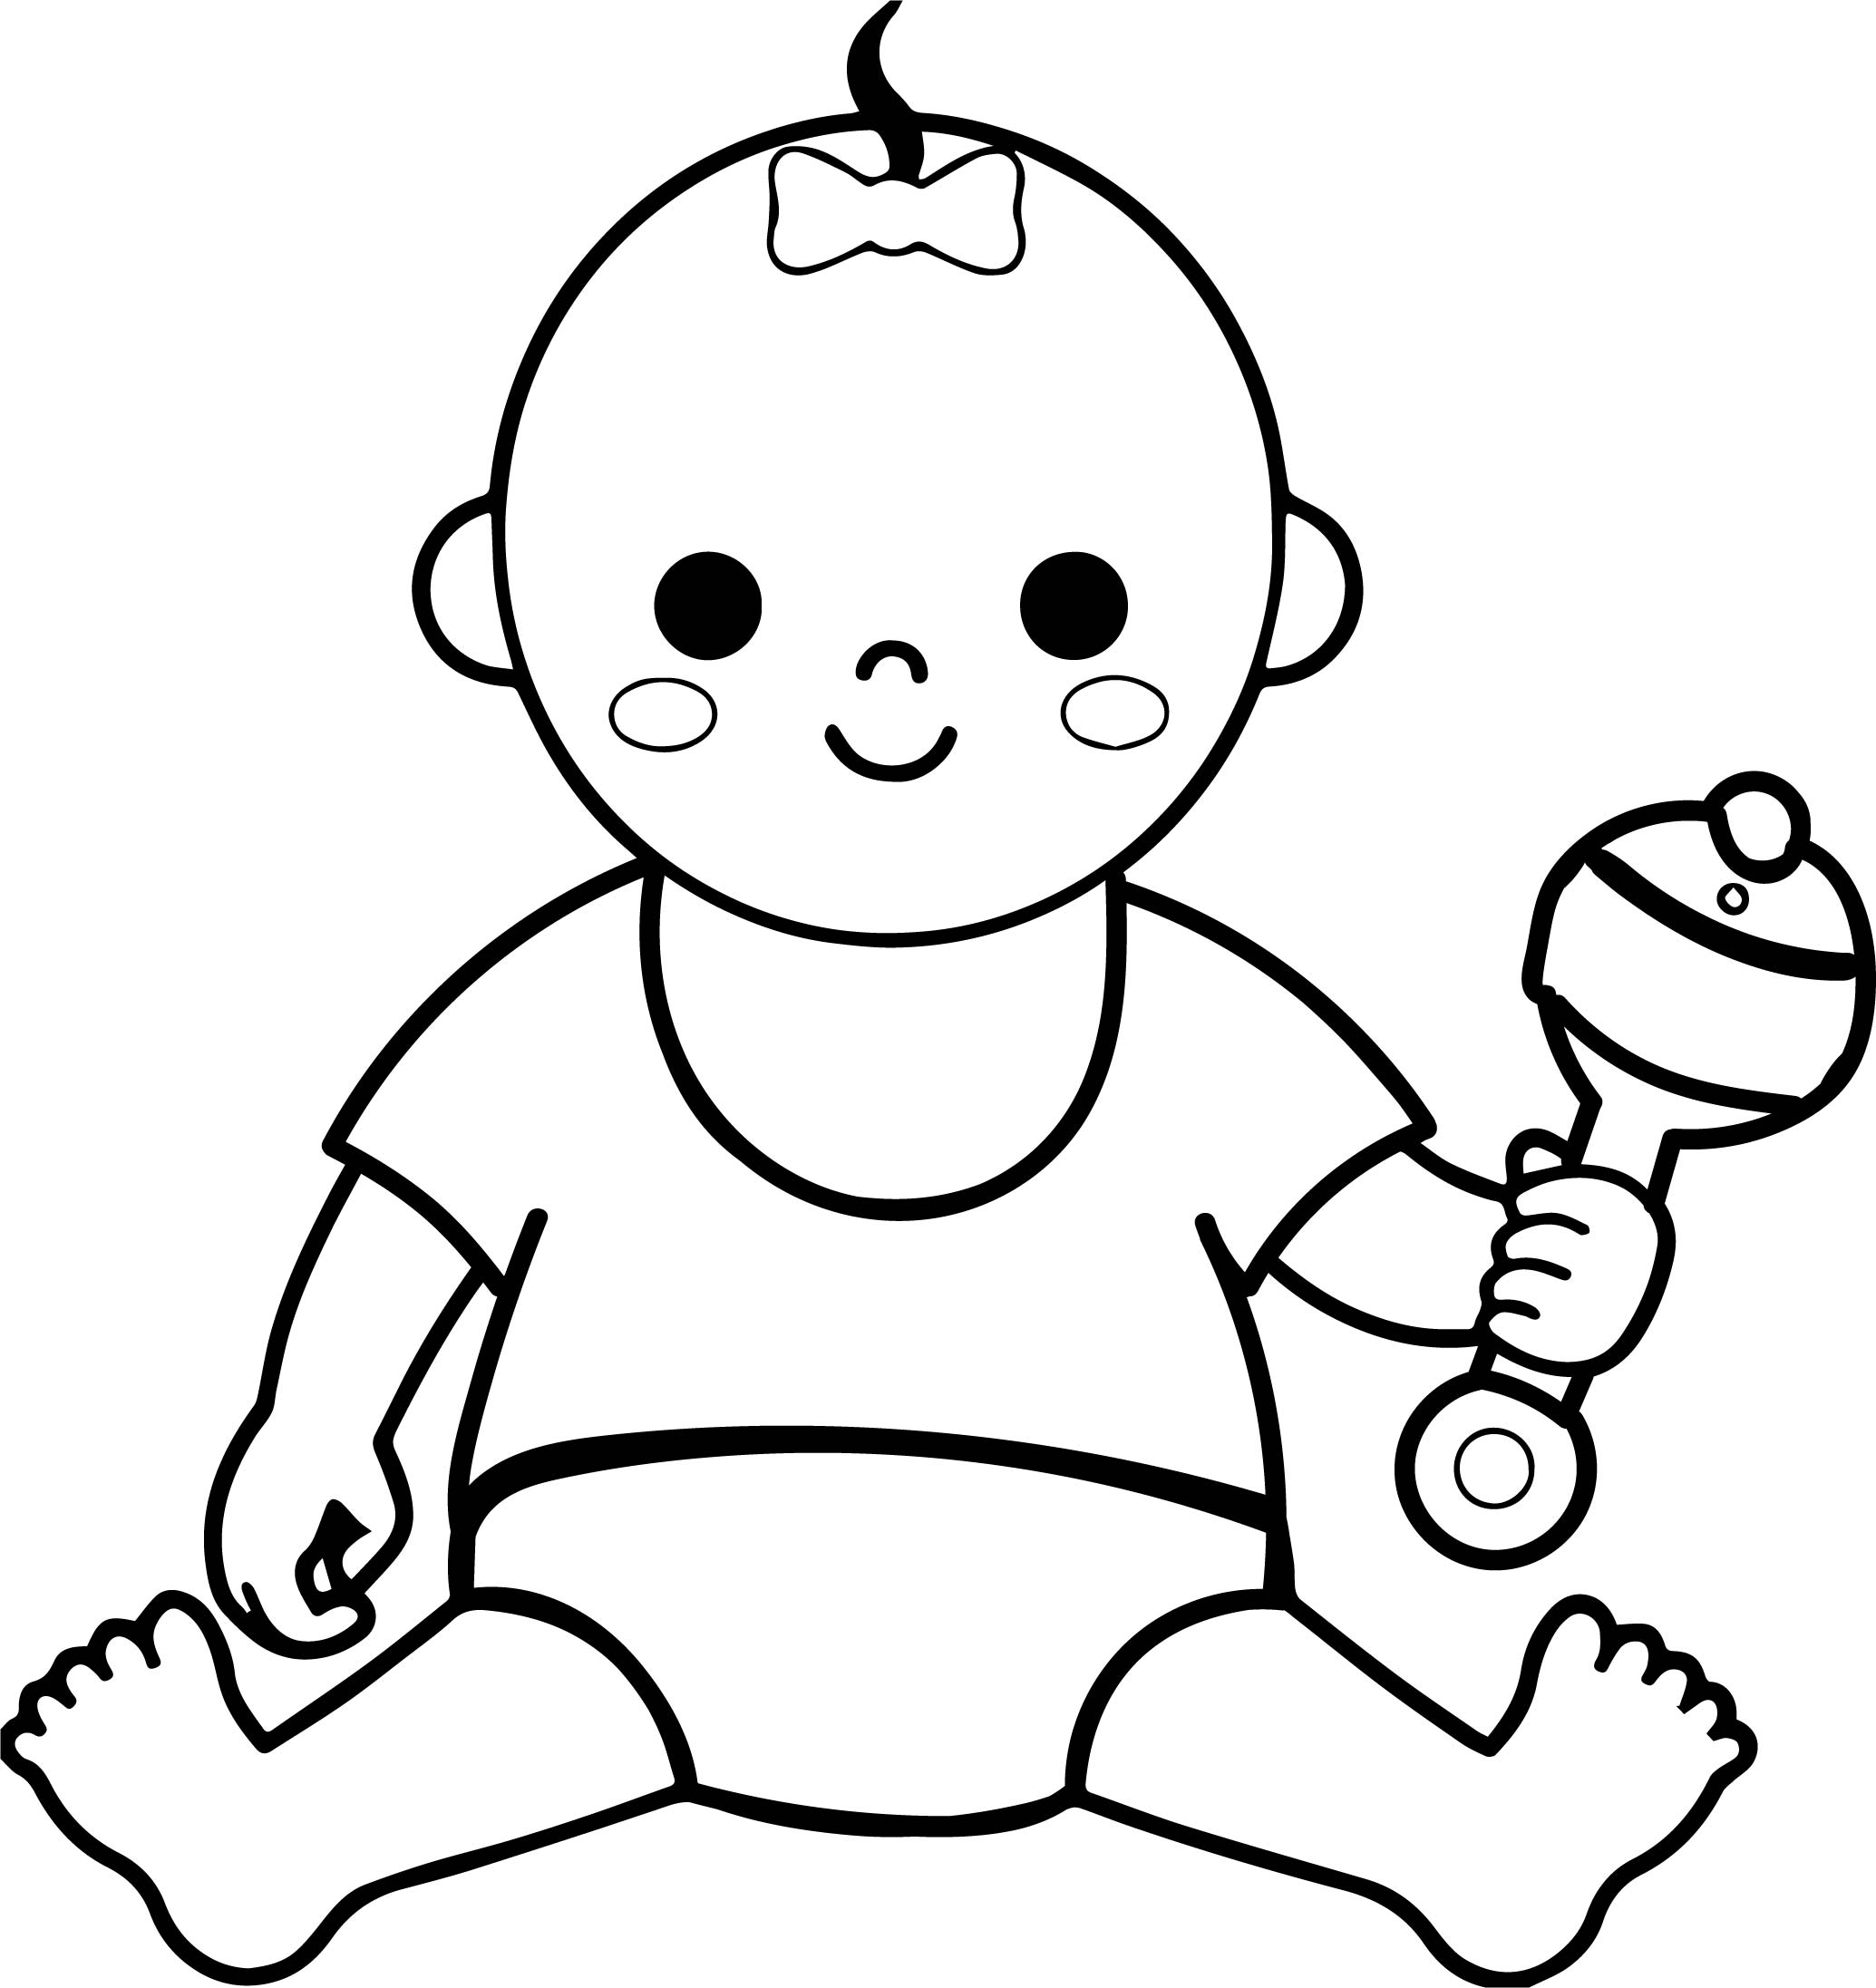 Baby Girl Border Coloring Page | Wecoloringpage.com